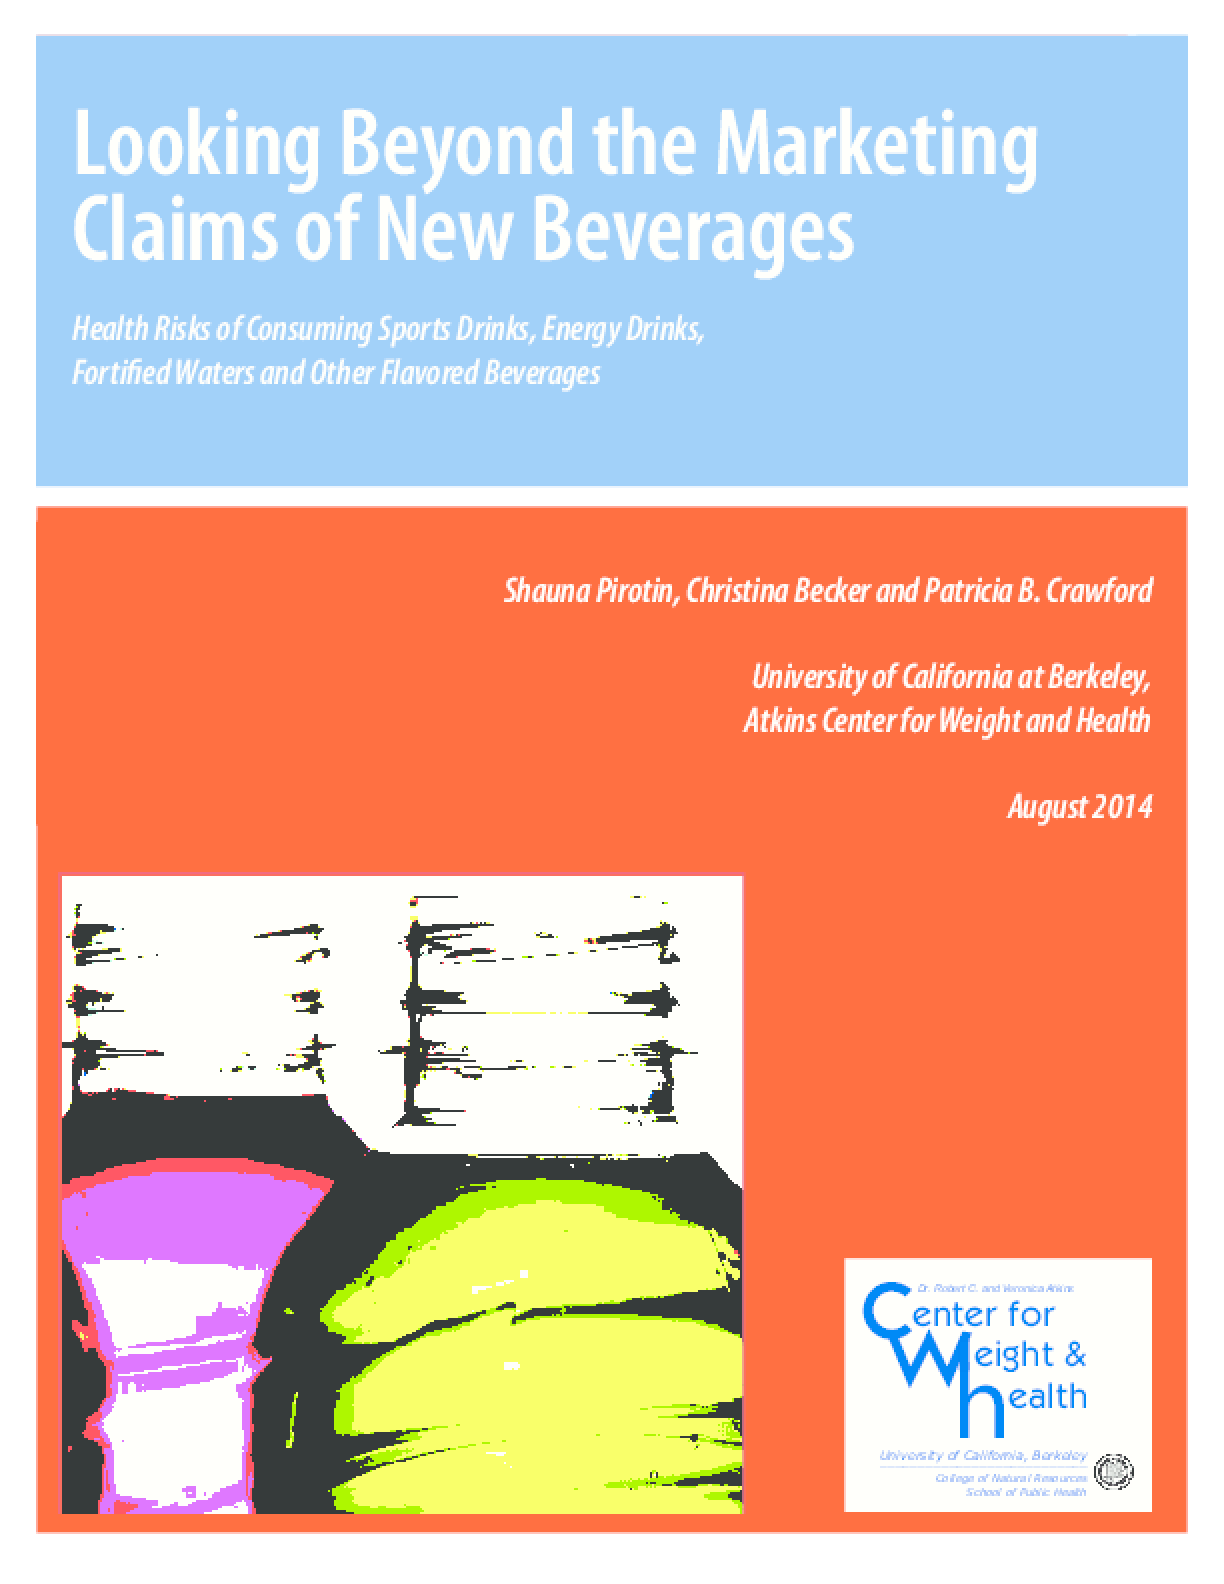 Looking Beyond the Marketing Claims of New Beverages: Health Risks of Consuming Sports Drinks, Energy Drinks, Fortified Waters, and Other Flavored Beverages